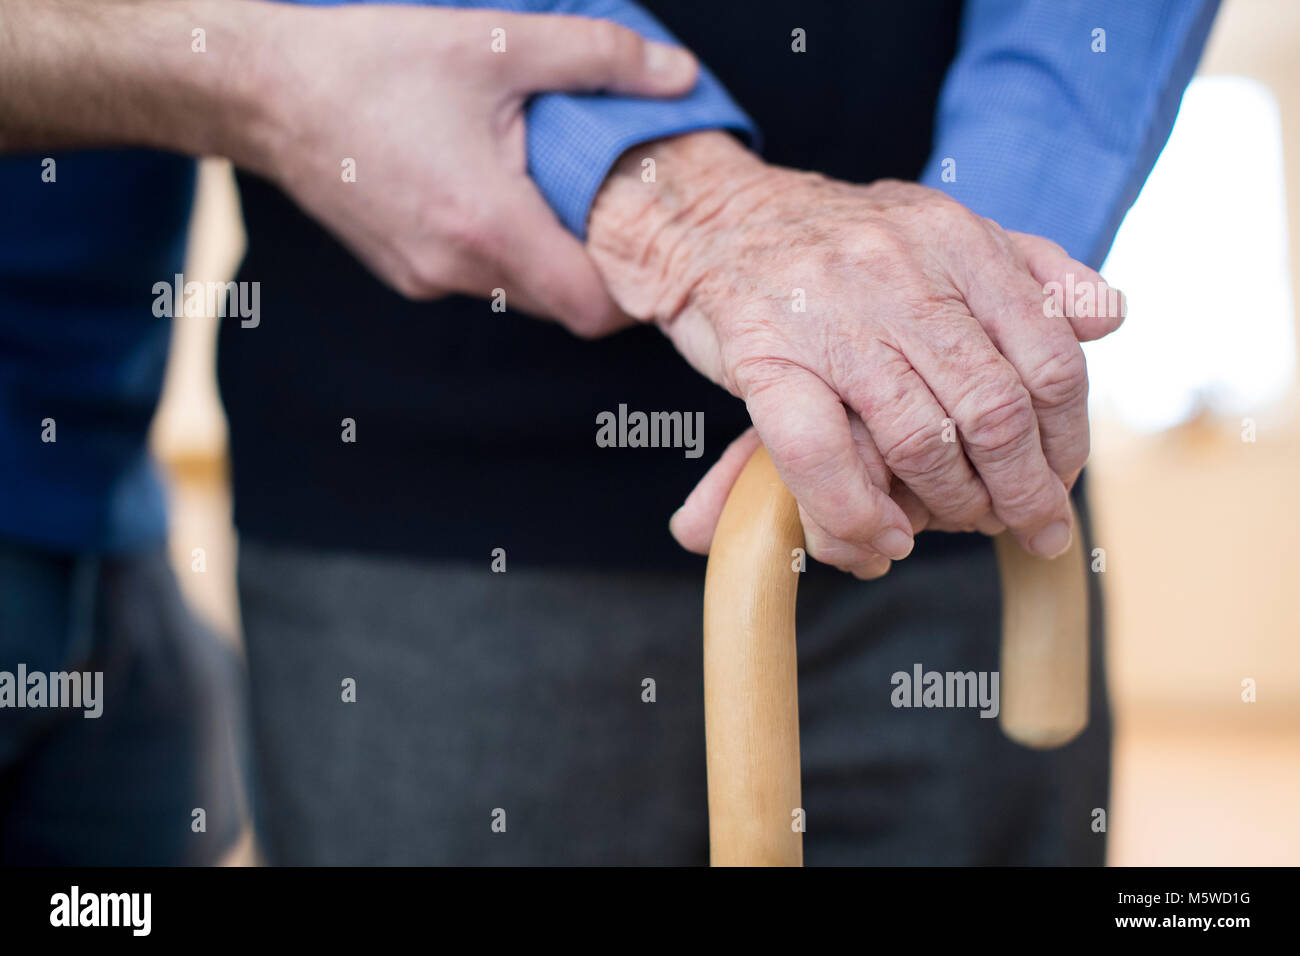 Senior Man's Hands On Walking Stick With Care Worker In Background - Stock Image